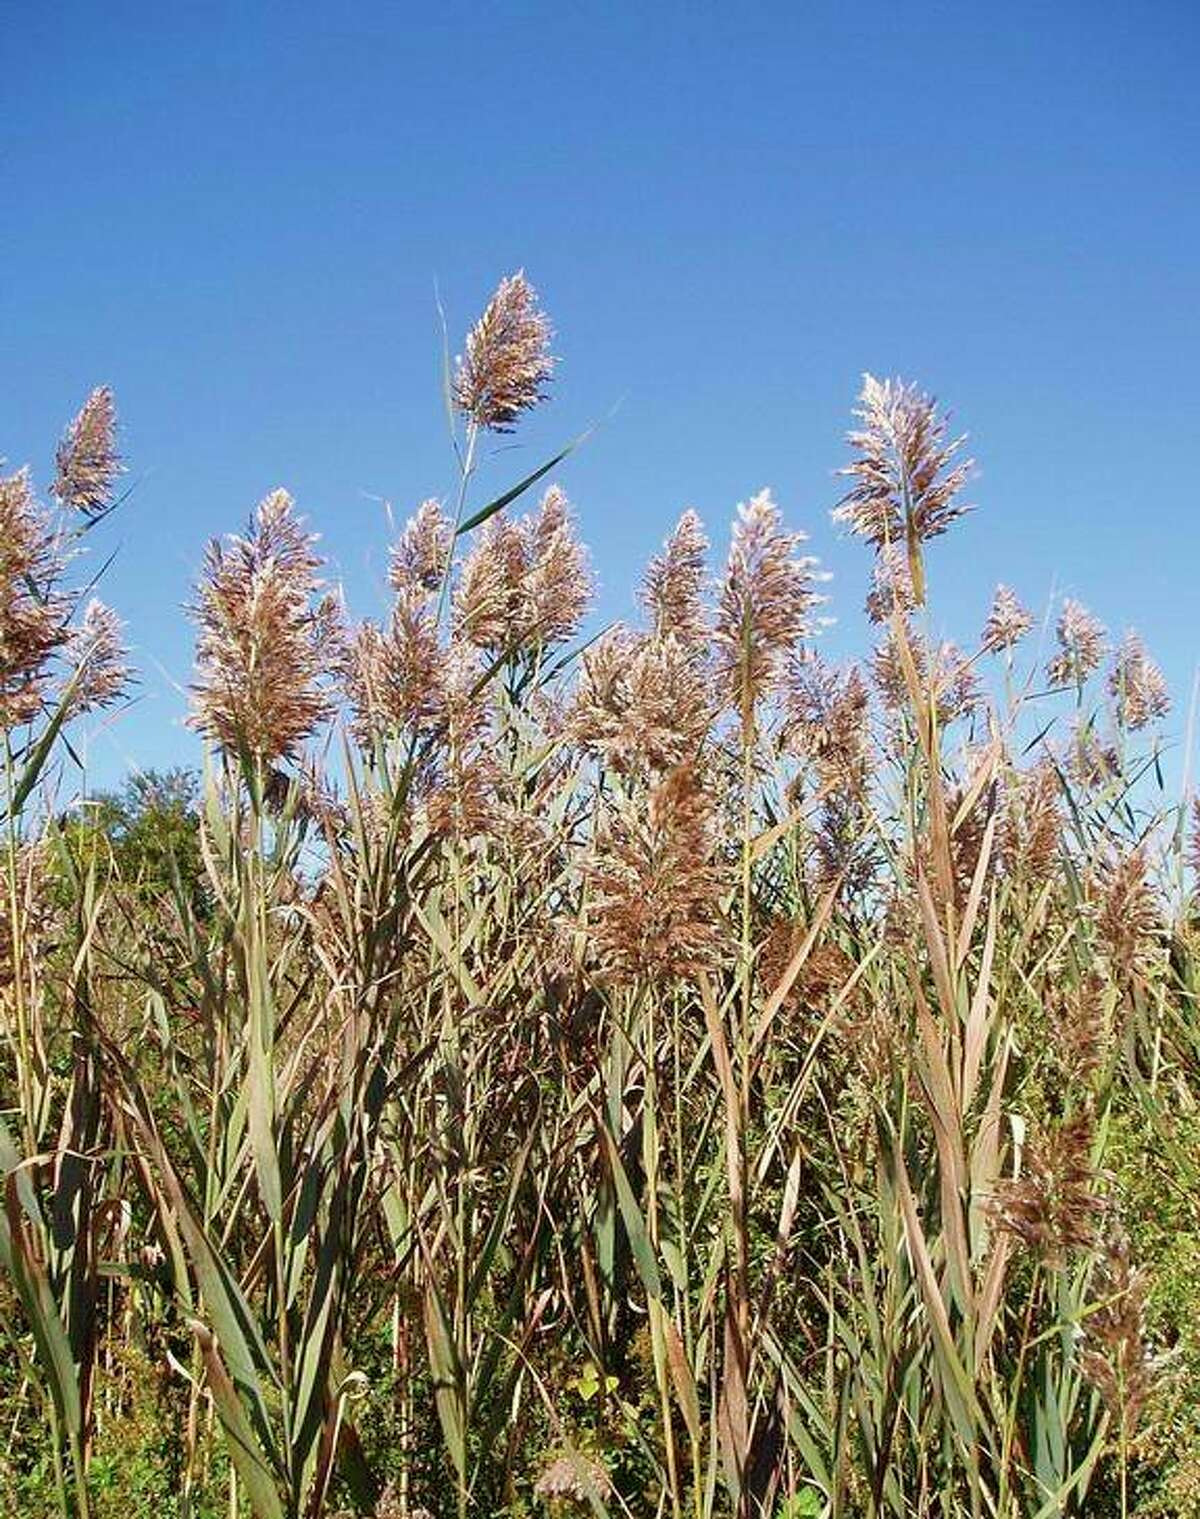 Phragmites will grow in dense monocultures as pictured. (Photo courtesy of Leslie J. Mehrhoff, University of Connecticut)